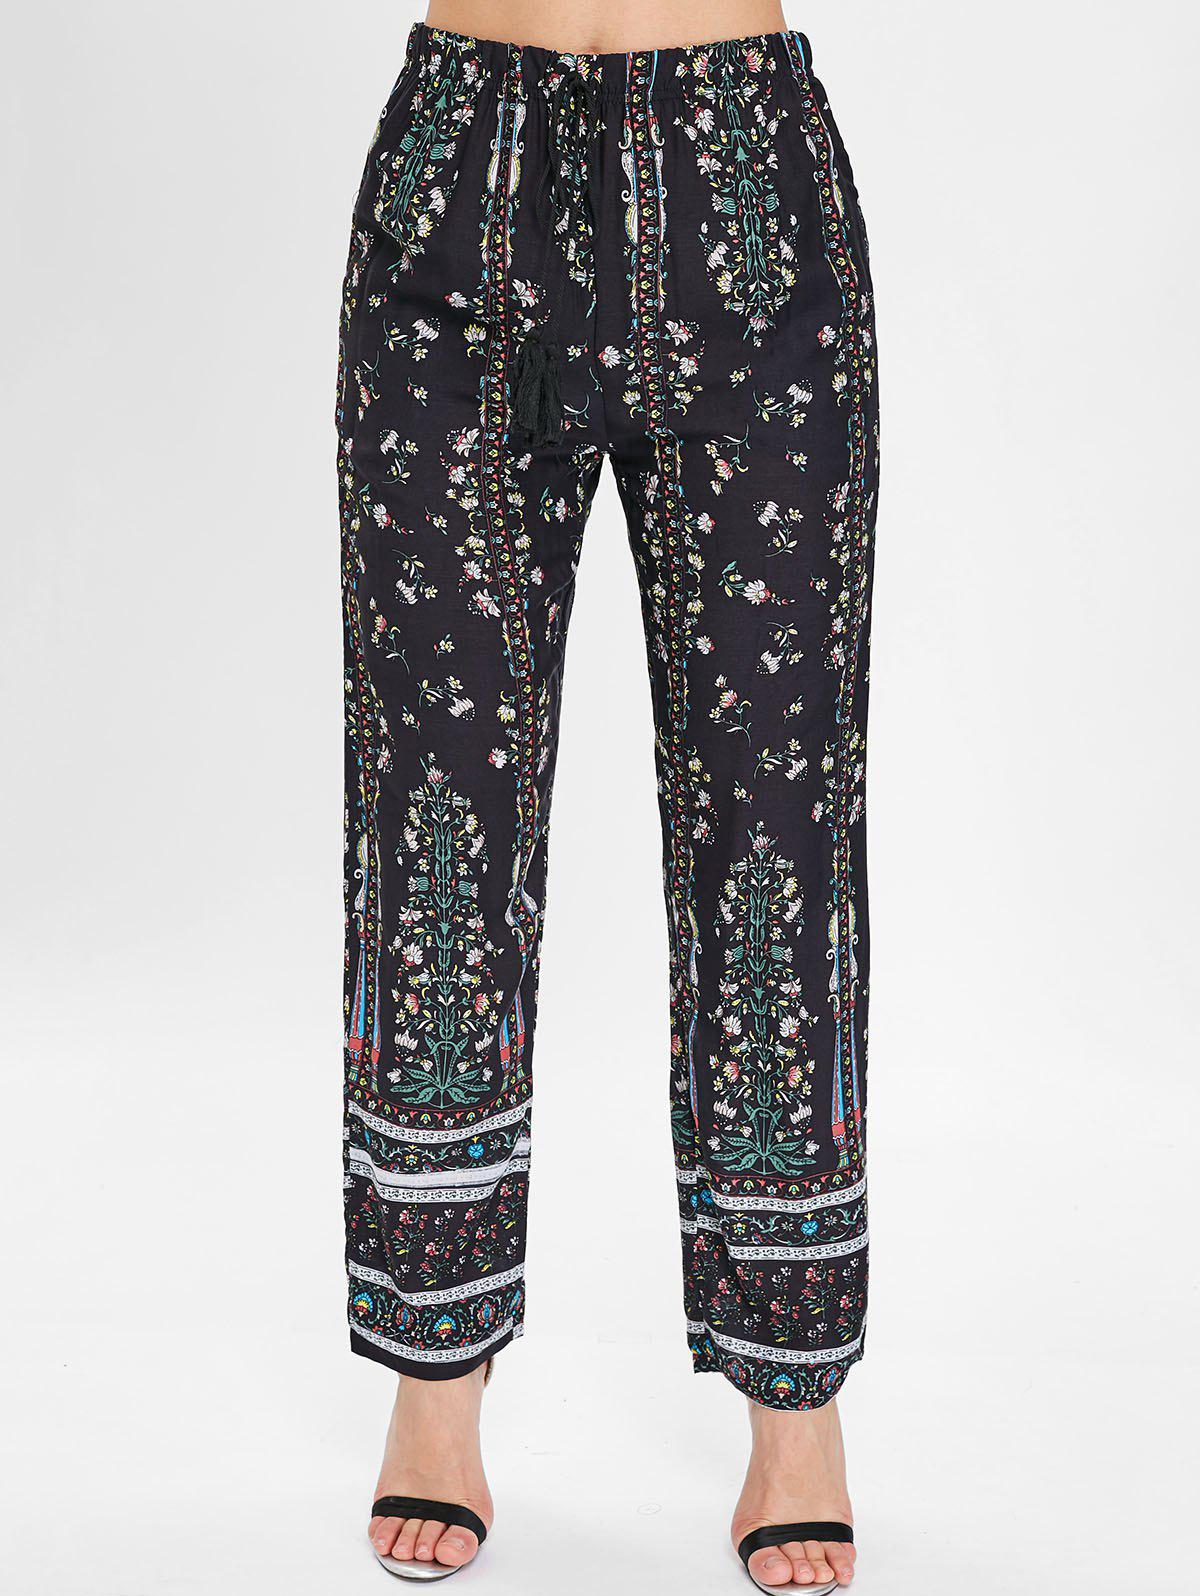 Chic Drawstring Floral Print Sleeping Pants